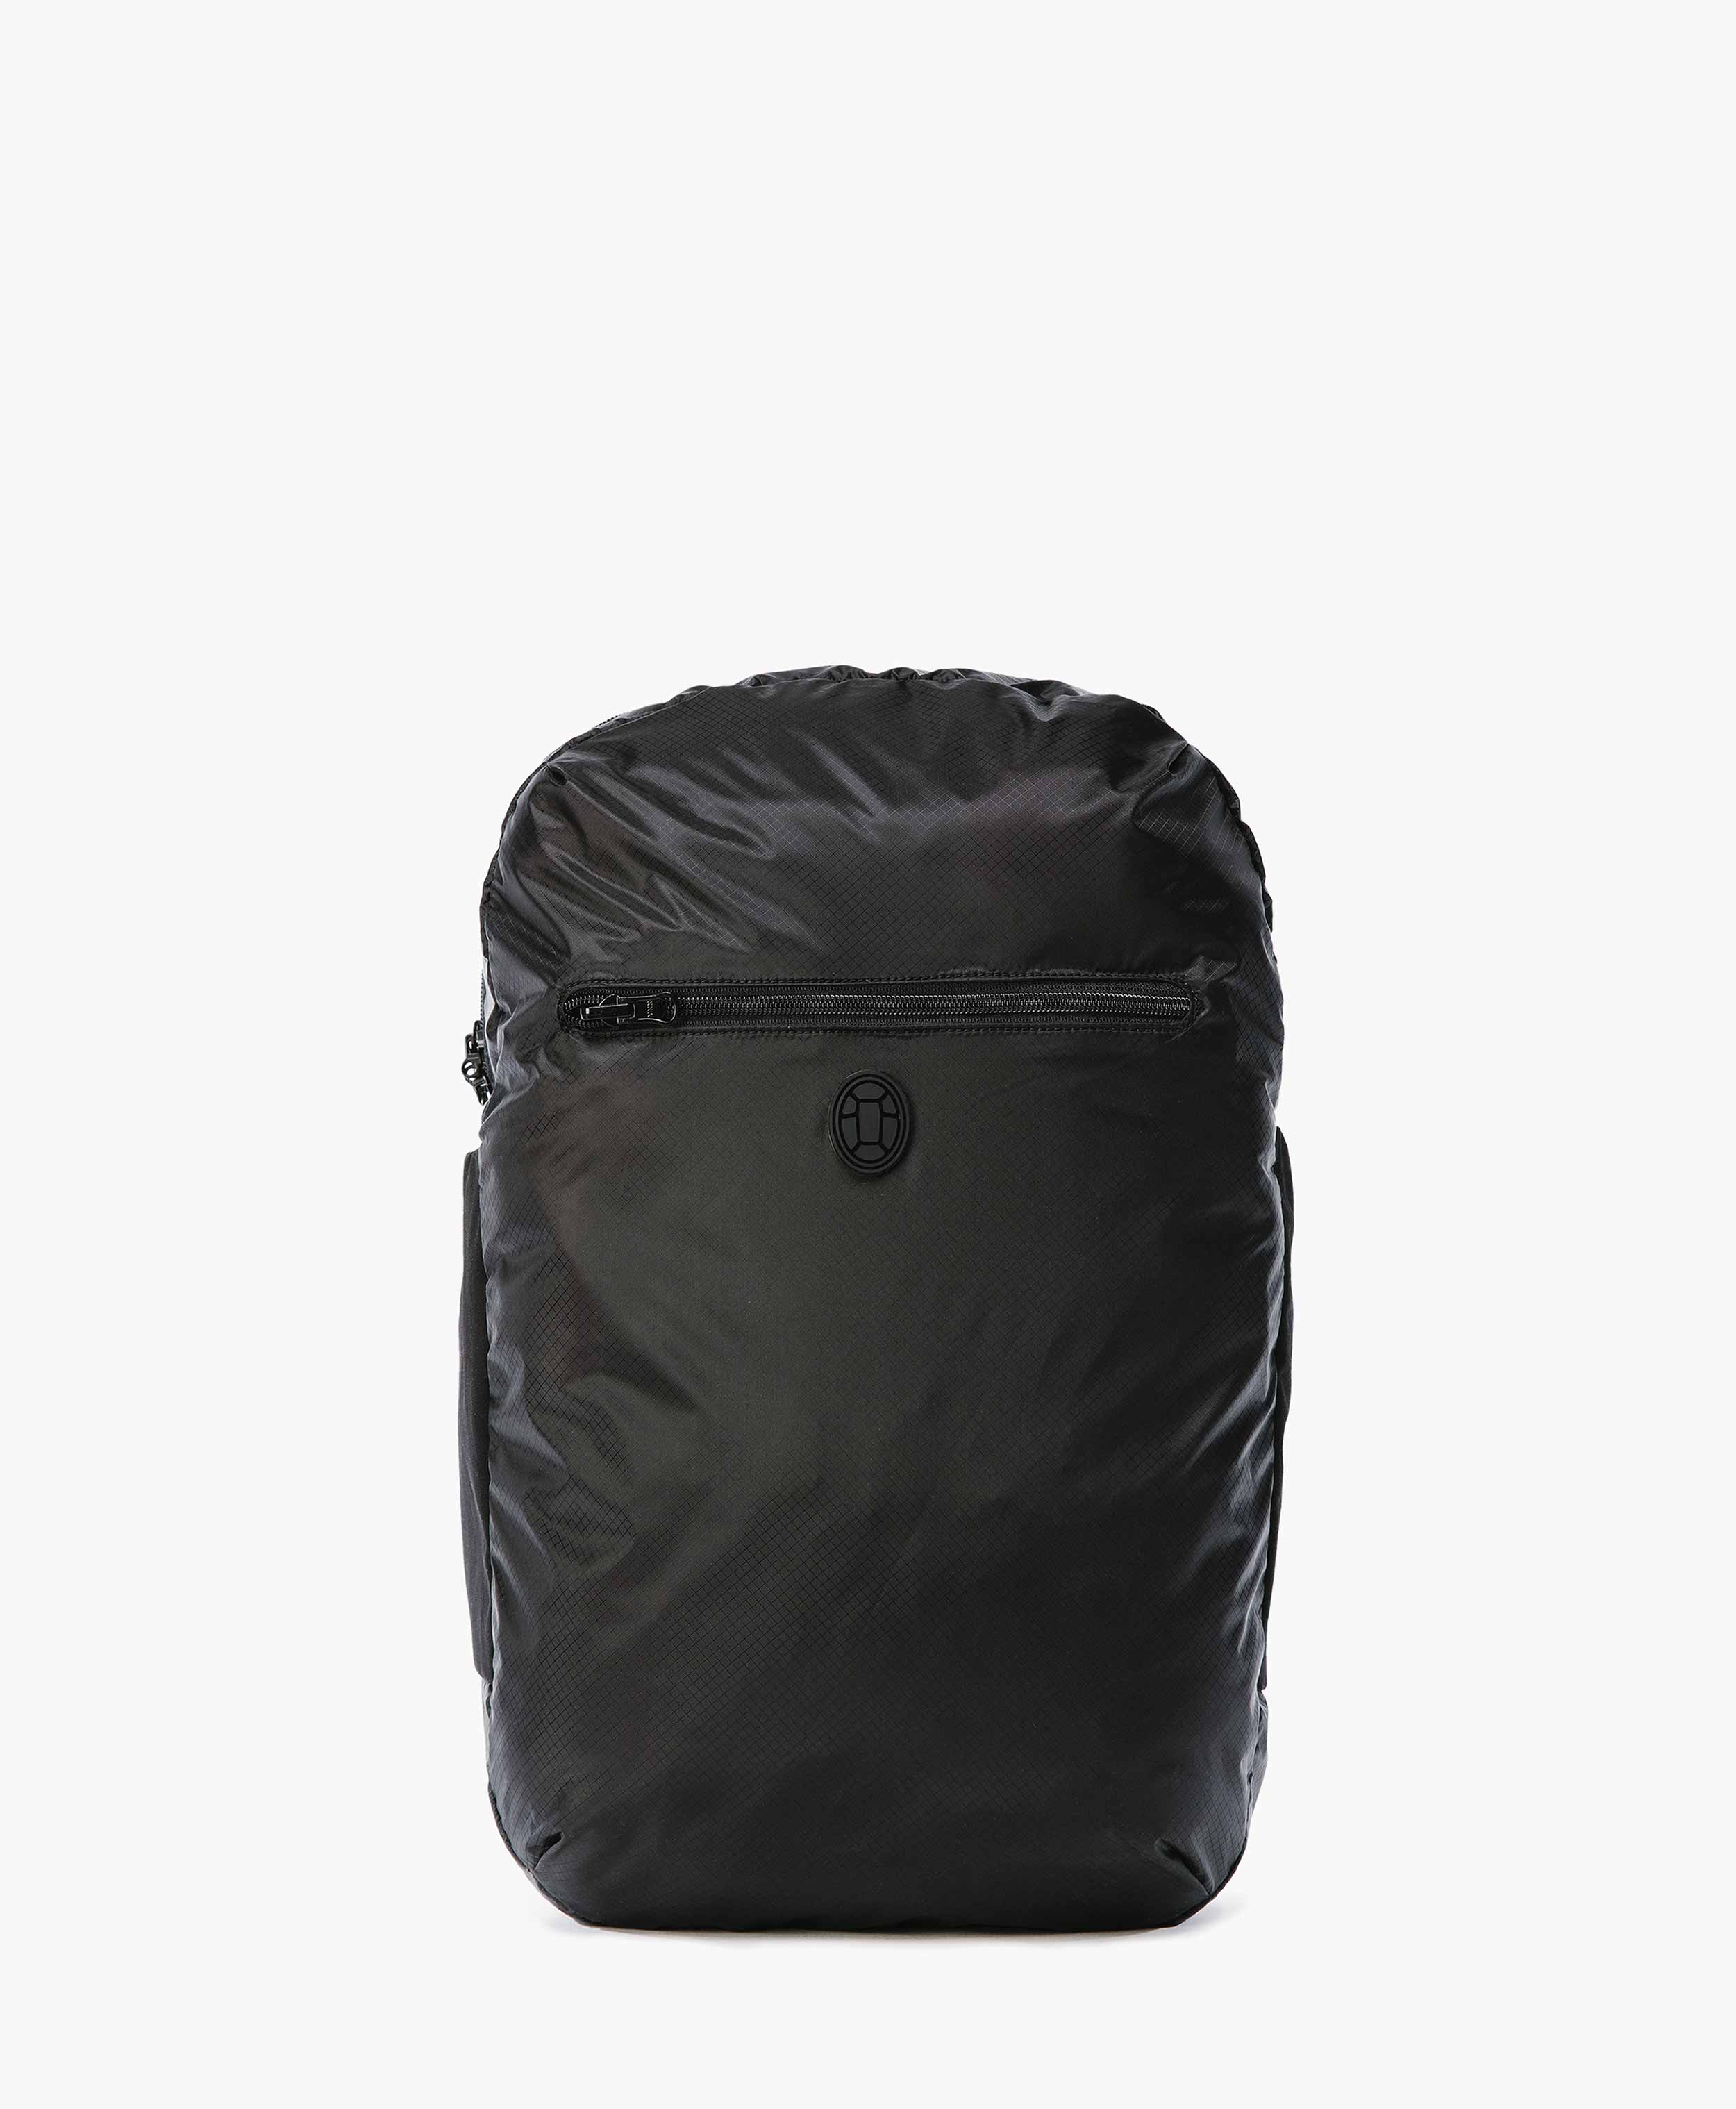 261fb1393765 Personal Item Size  Make the Most of Your Space - Tortuga Backpacks Blog